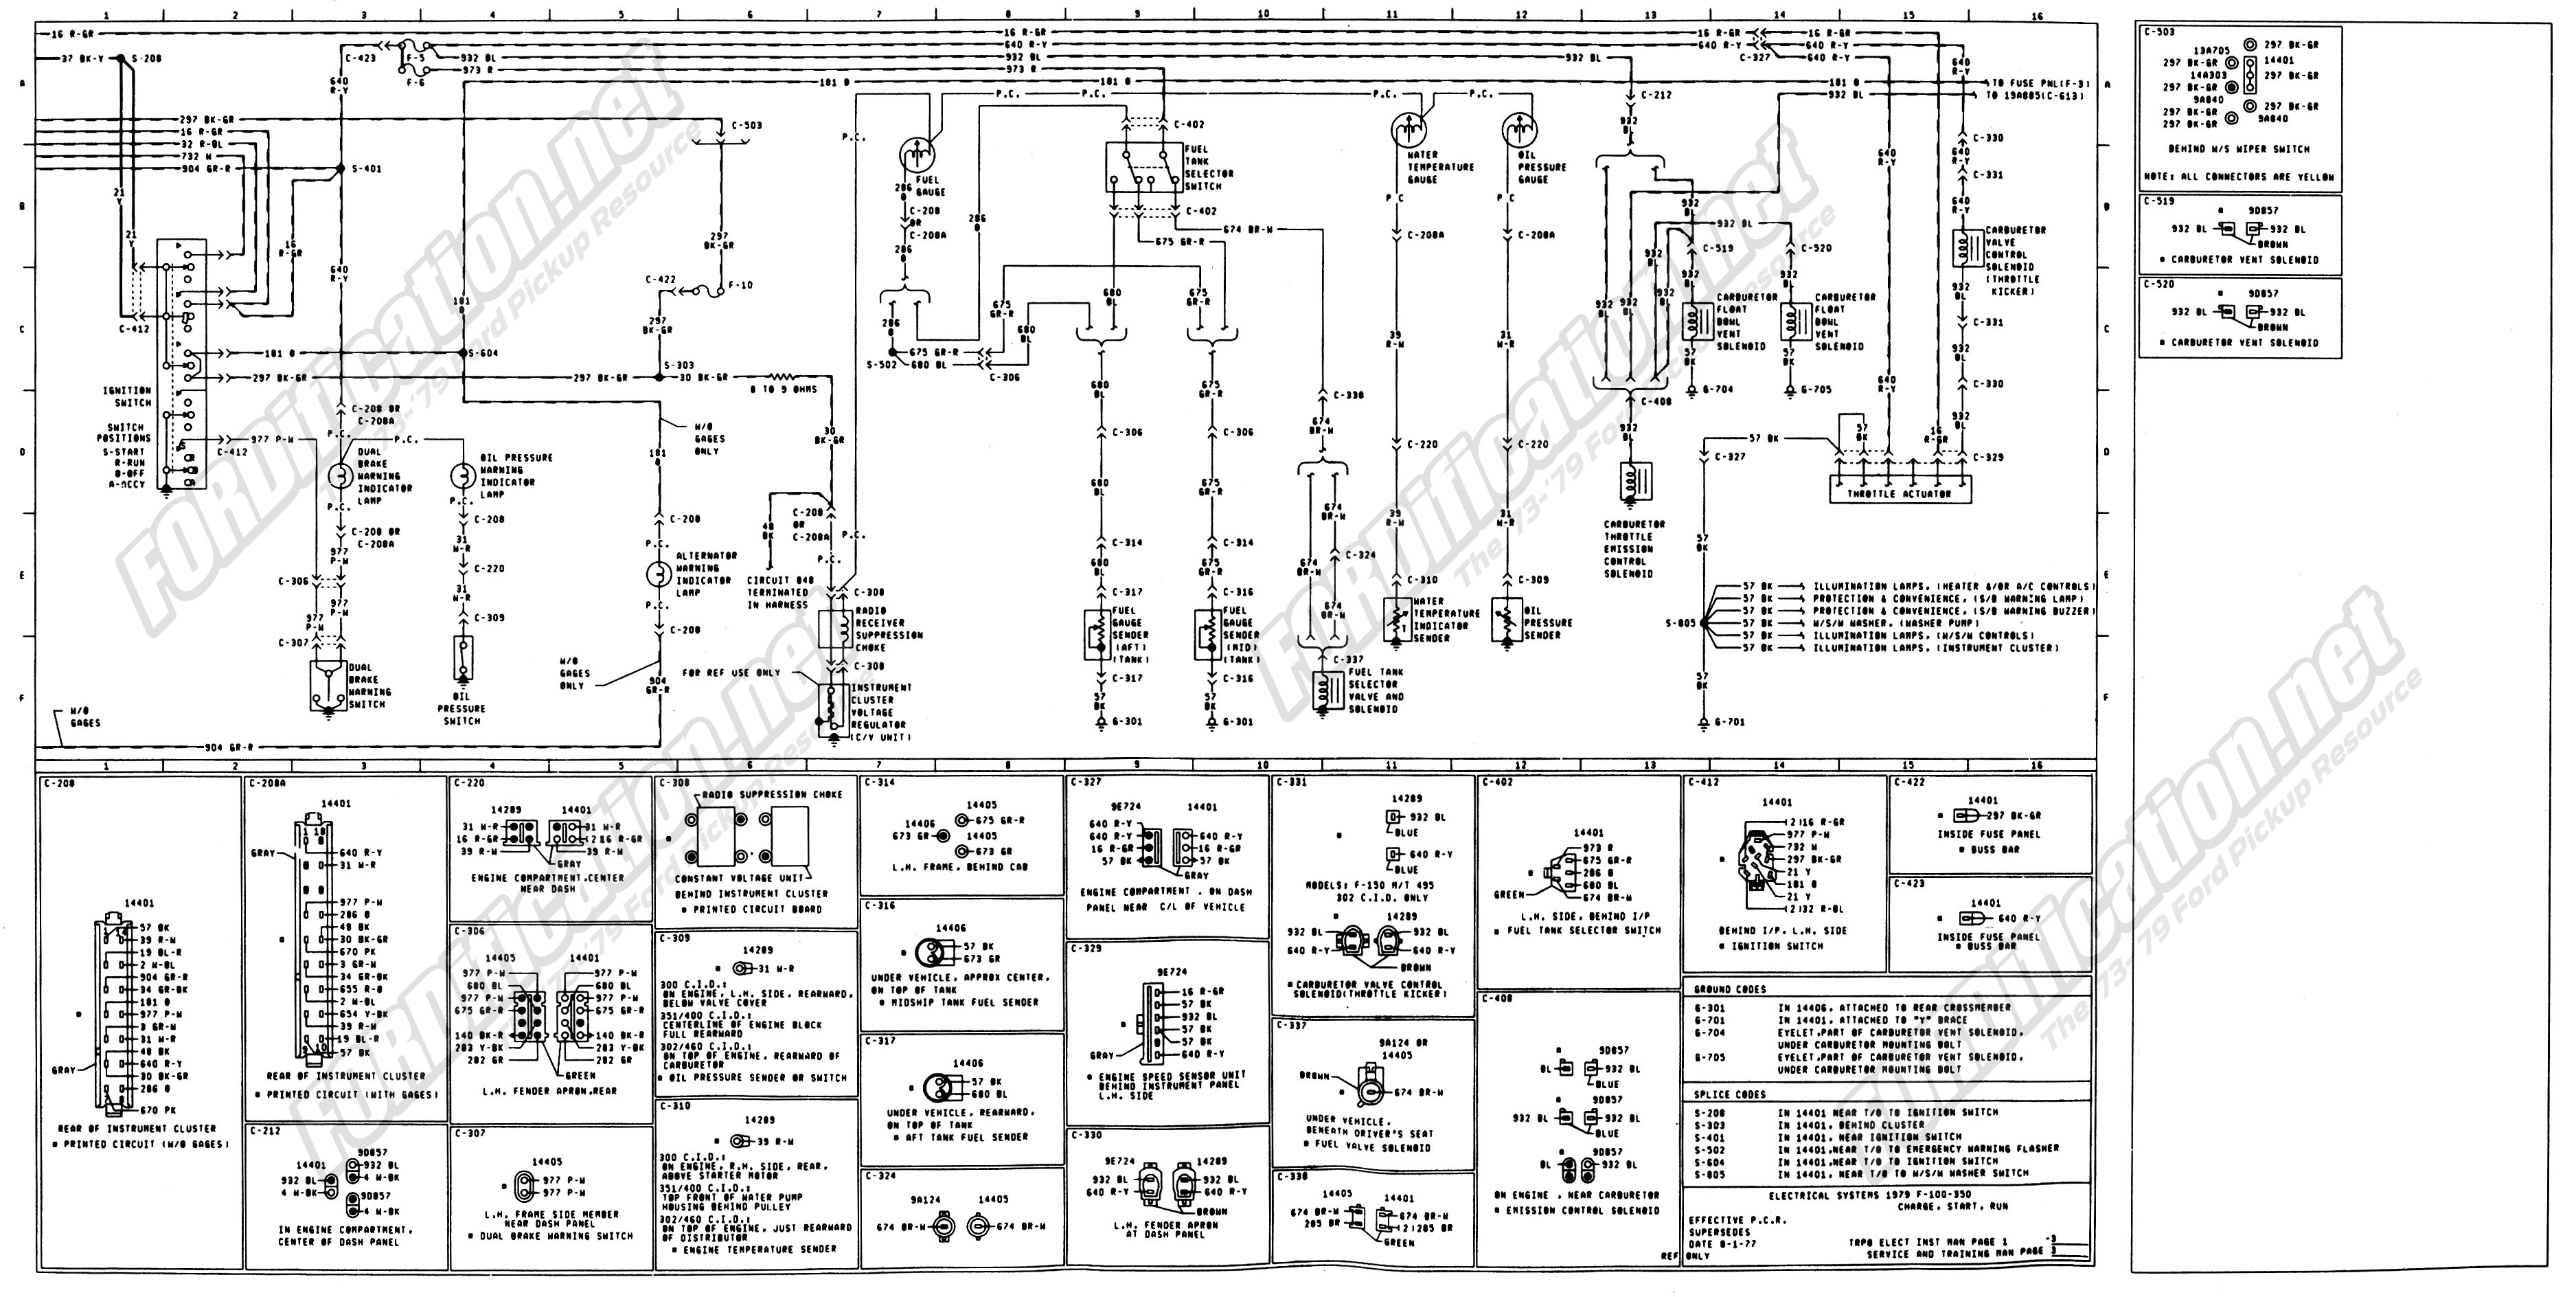 2004 Ford F350 6 0 Engine Wiring Harness - Wiring Diagram List Underhood Wiring Harness Ford on 6.0 powerstroke engine wiring harness, ford engine wiring harness, 2005 chevy aveo engine wiring harness, 51 ford wiring harness, car wiring harness, t one wiring harness, ford 7.3 diesel engine diagram, automotive wiring harness, ford truck wiring harness, 1960 ford f100 wiring harness,